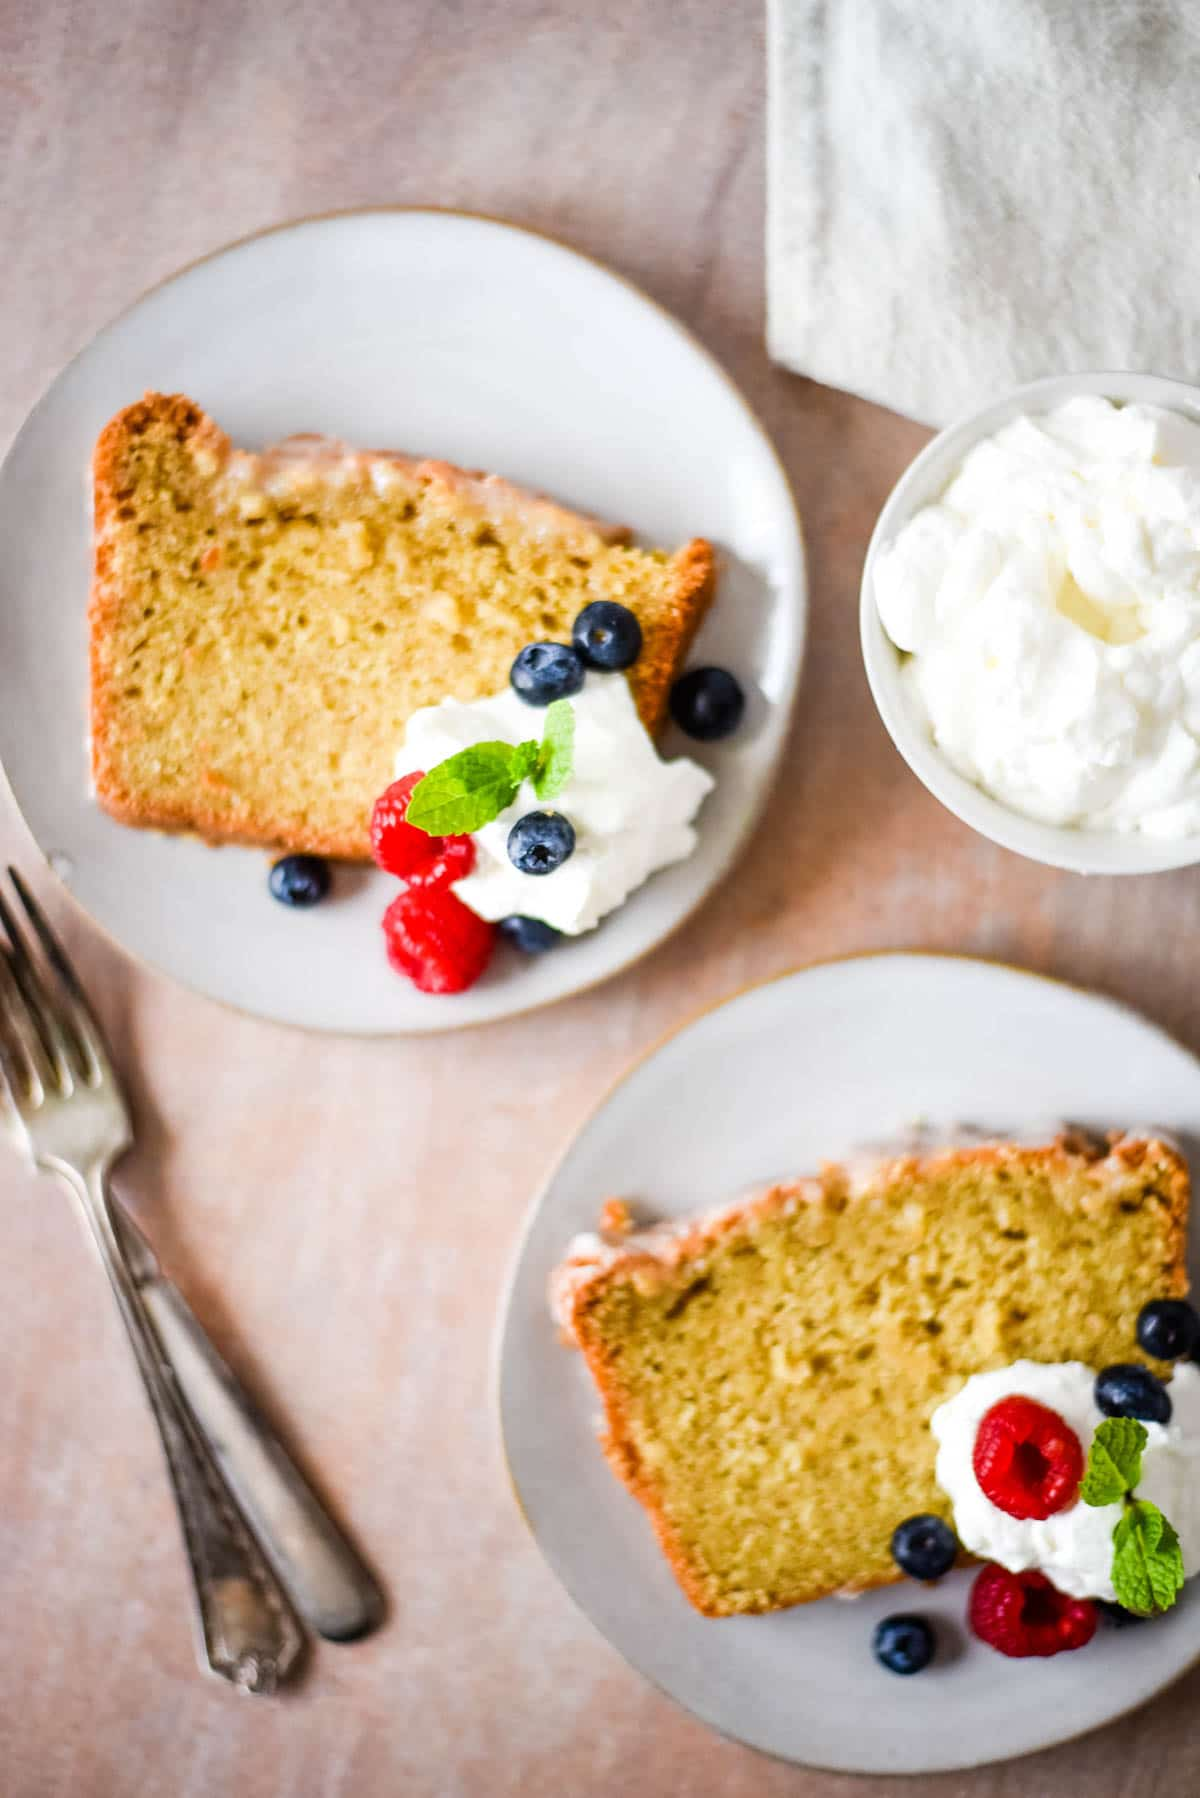 two slices of sourdough pound cake with whipped cream and berries